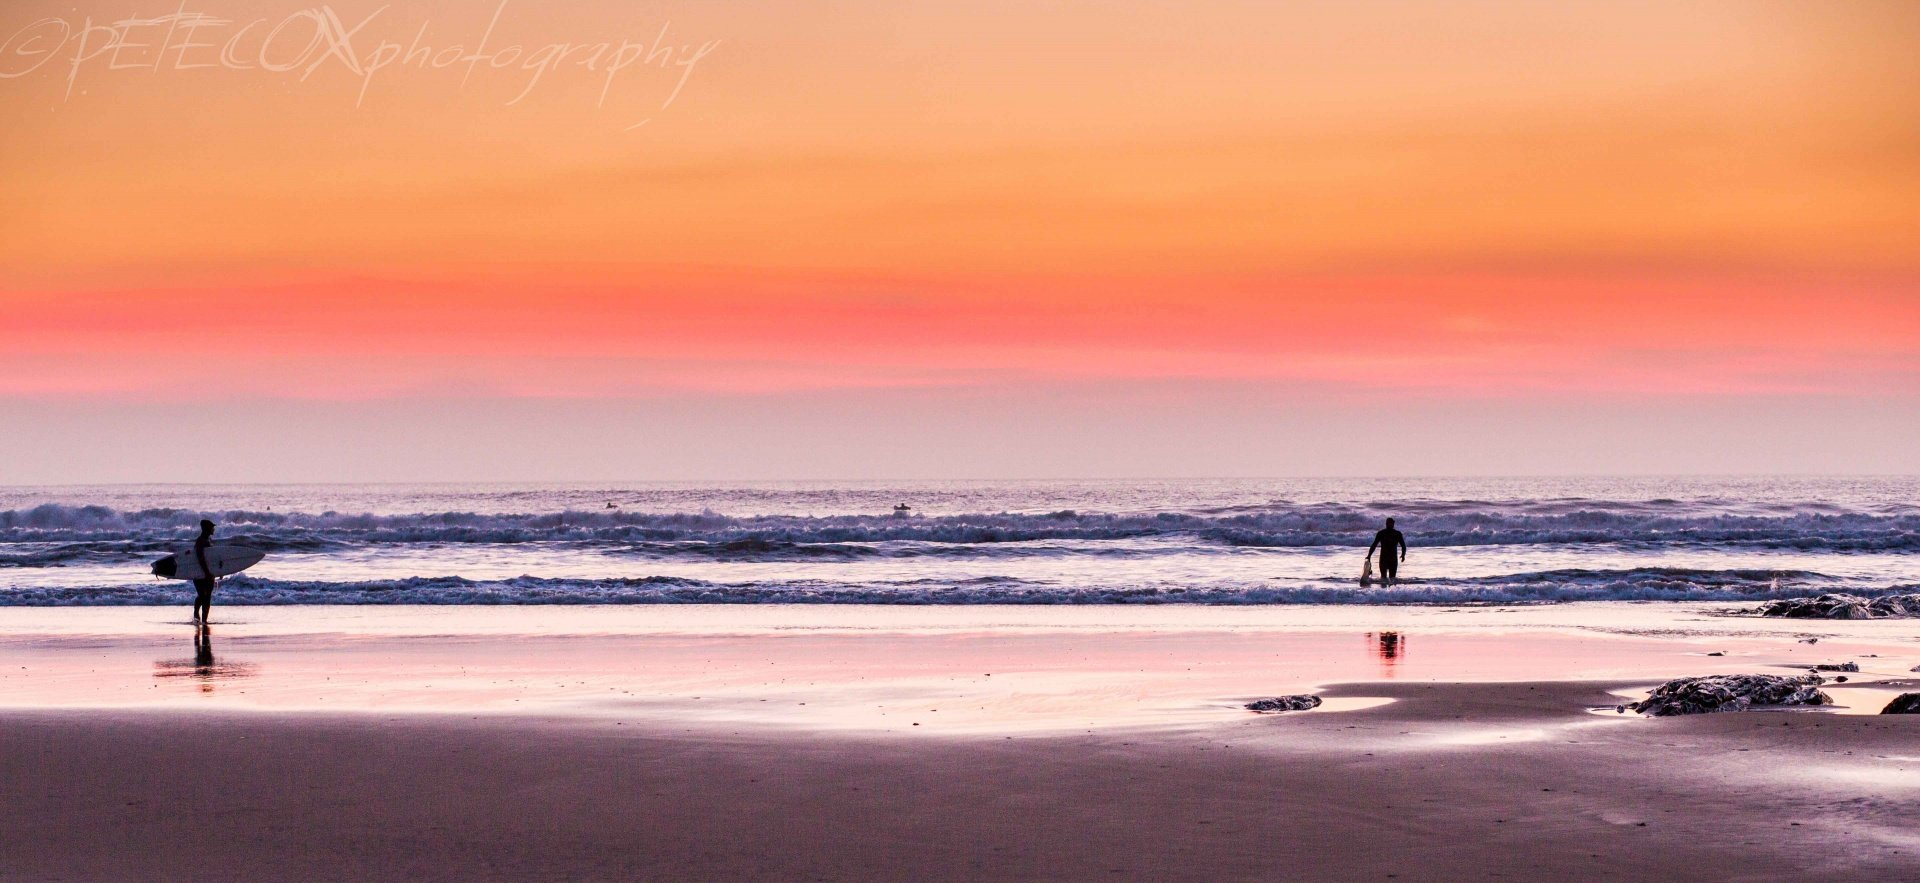 Peter Cox's photo of Croyde Beach